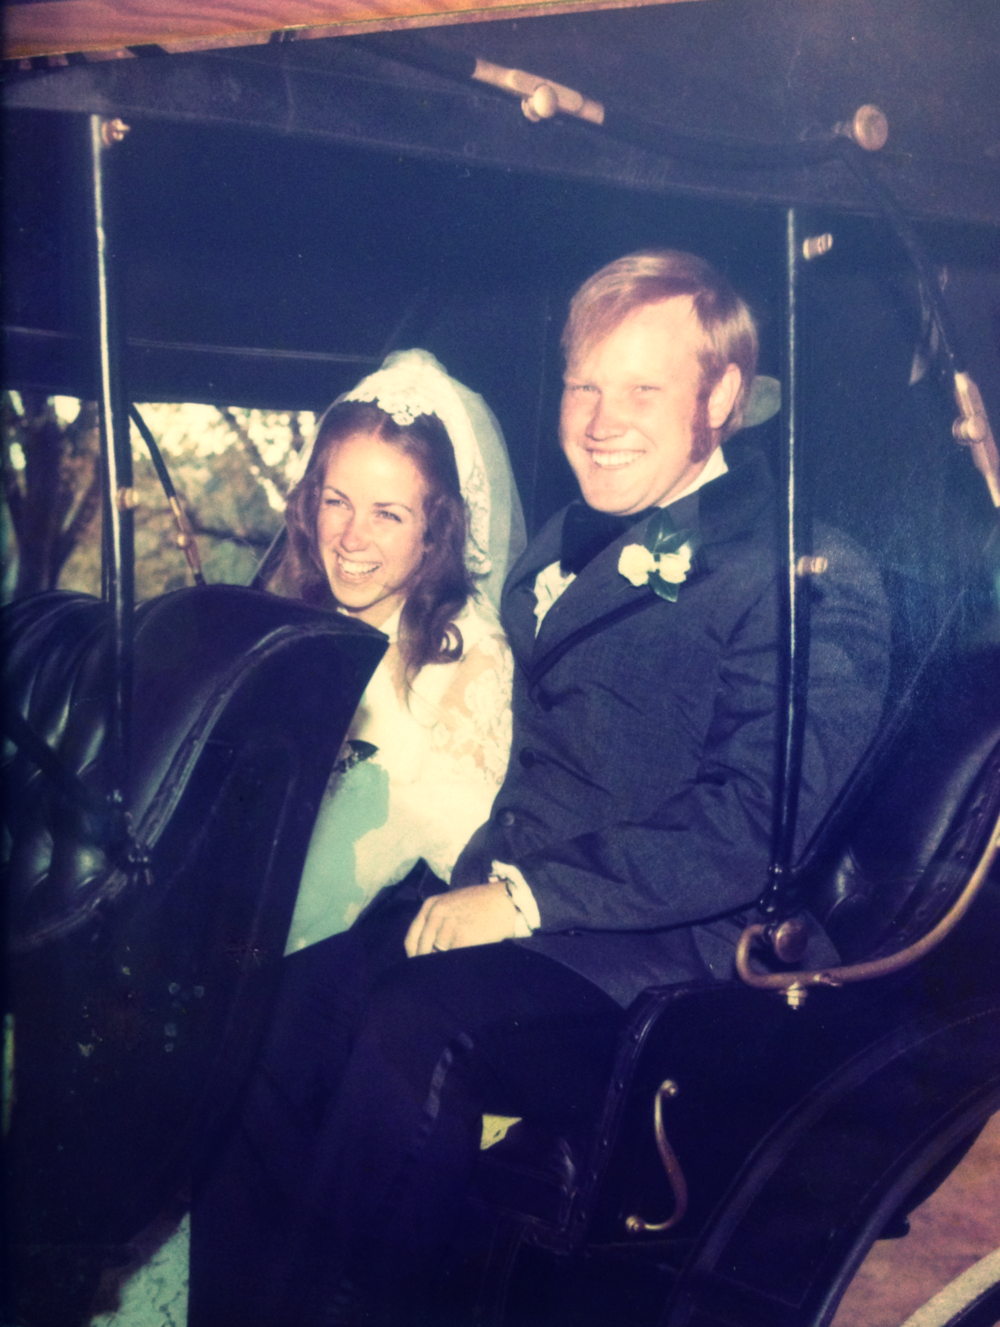 Tim and Colleen on their wedding day, 1973